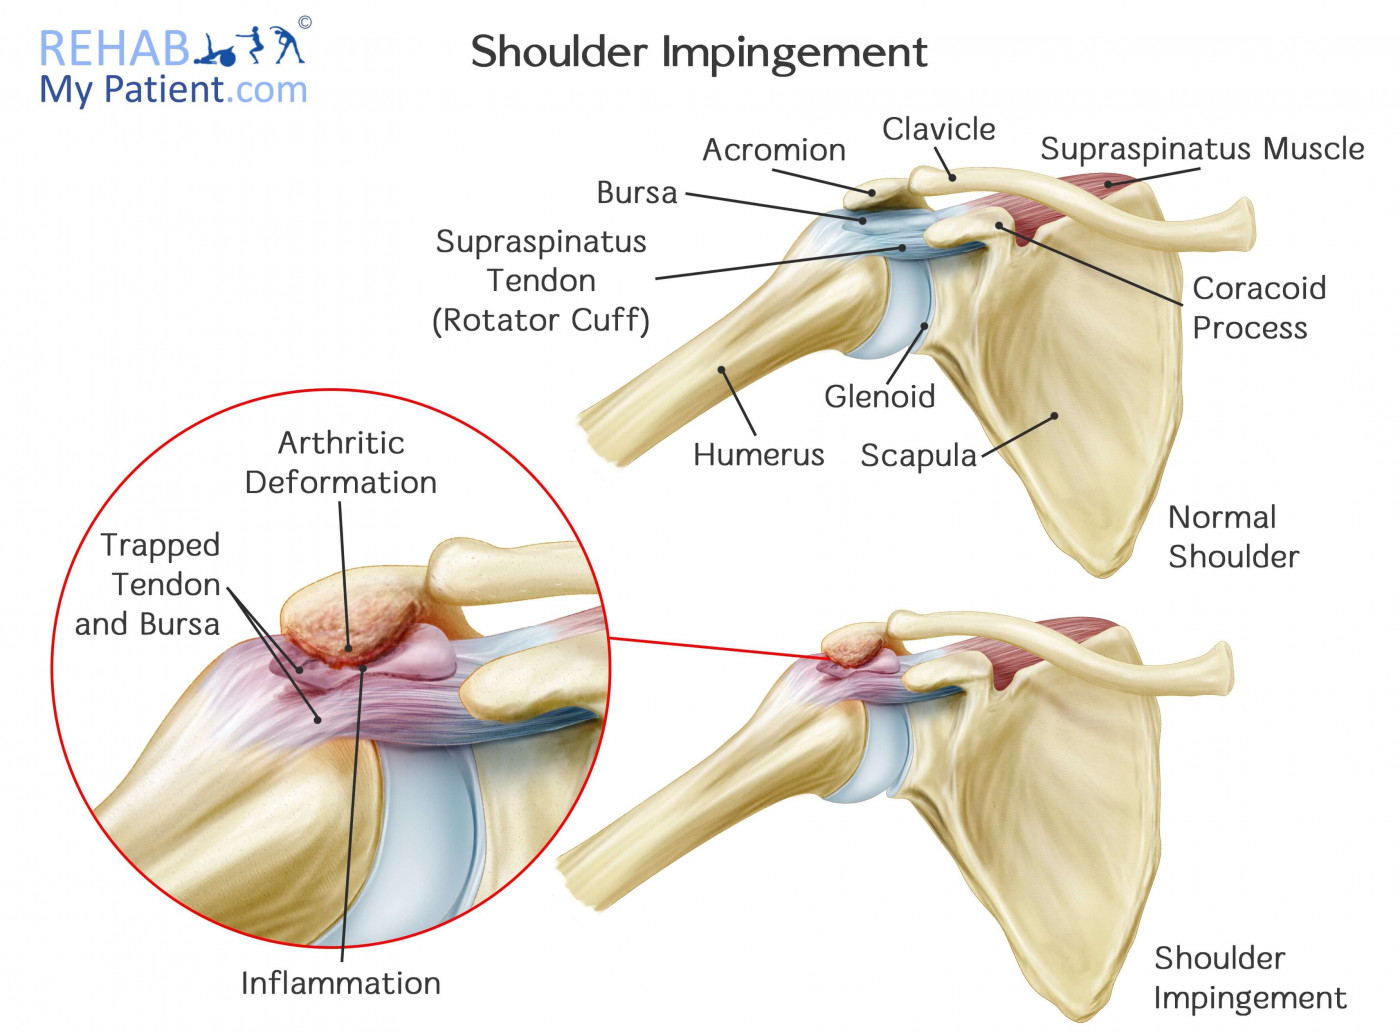 Primary Shoulder Impingement: As you can see in the image, the subacromial space ( space below the acromion has decreased causing an impingement.